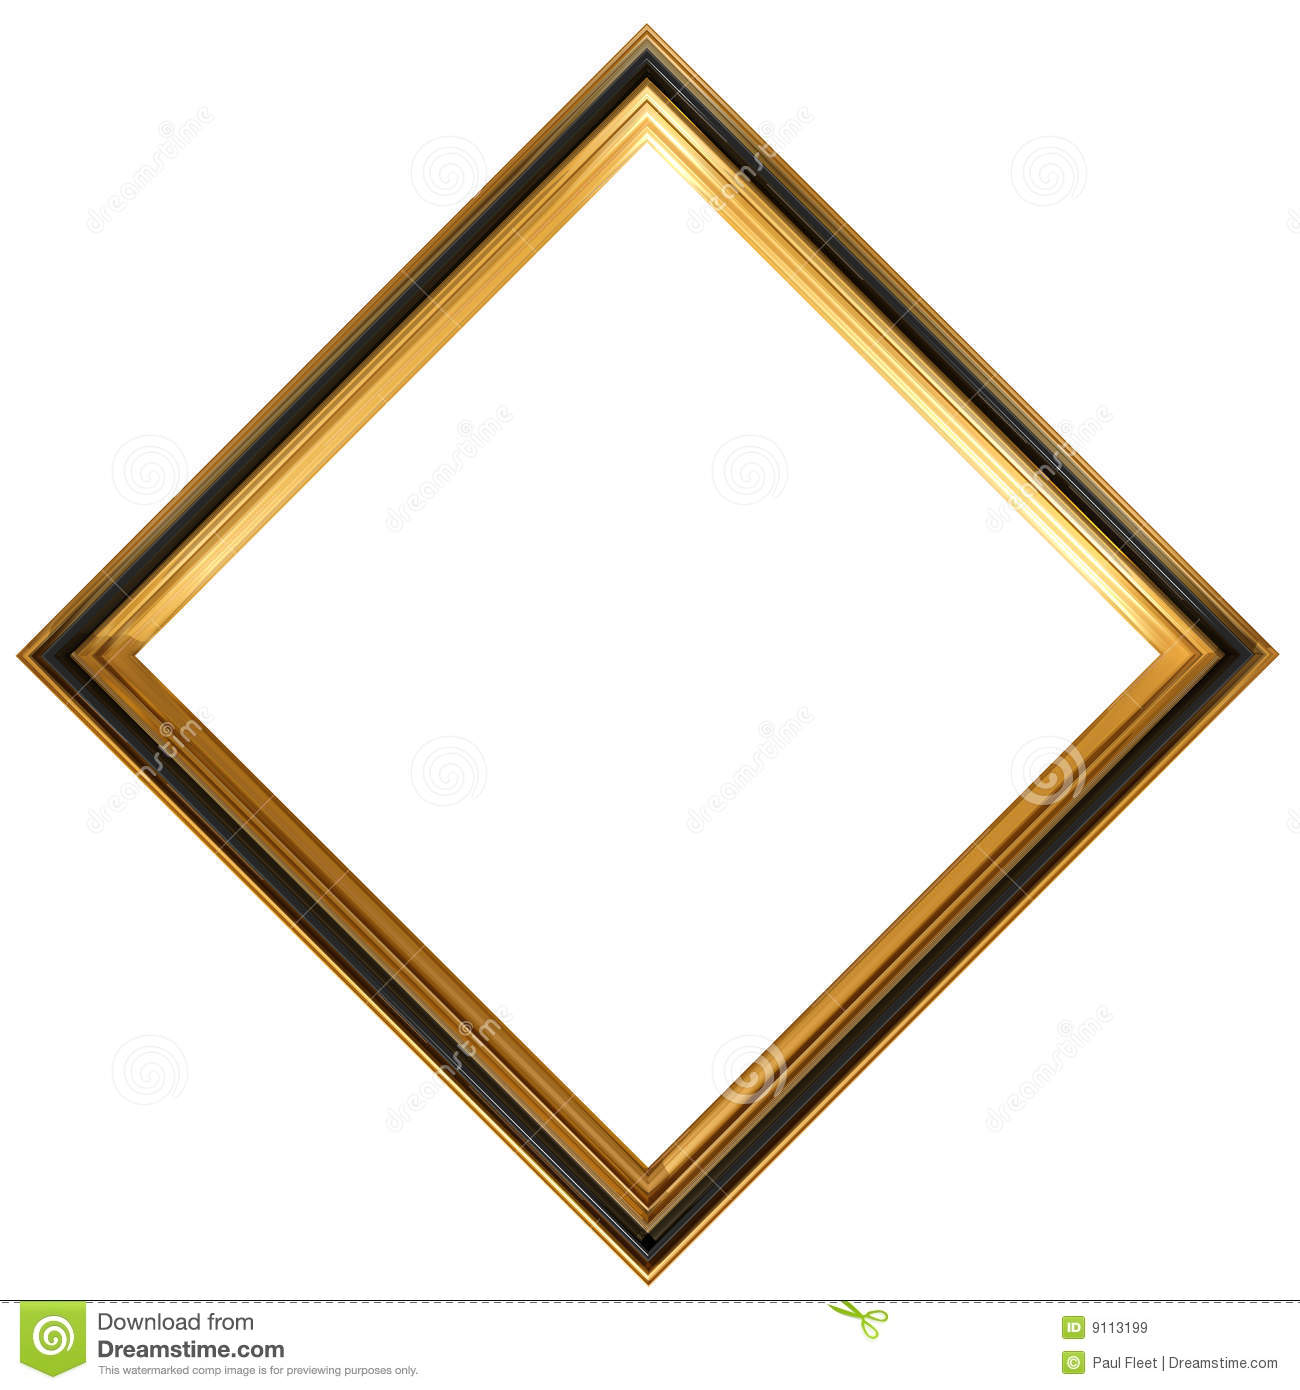 Diamond Shaped Antique Picture Frame Royalty Free Stock Images - Image: 9113199